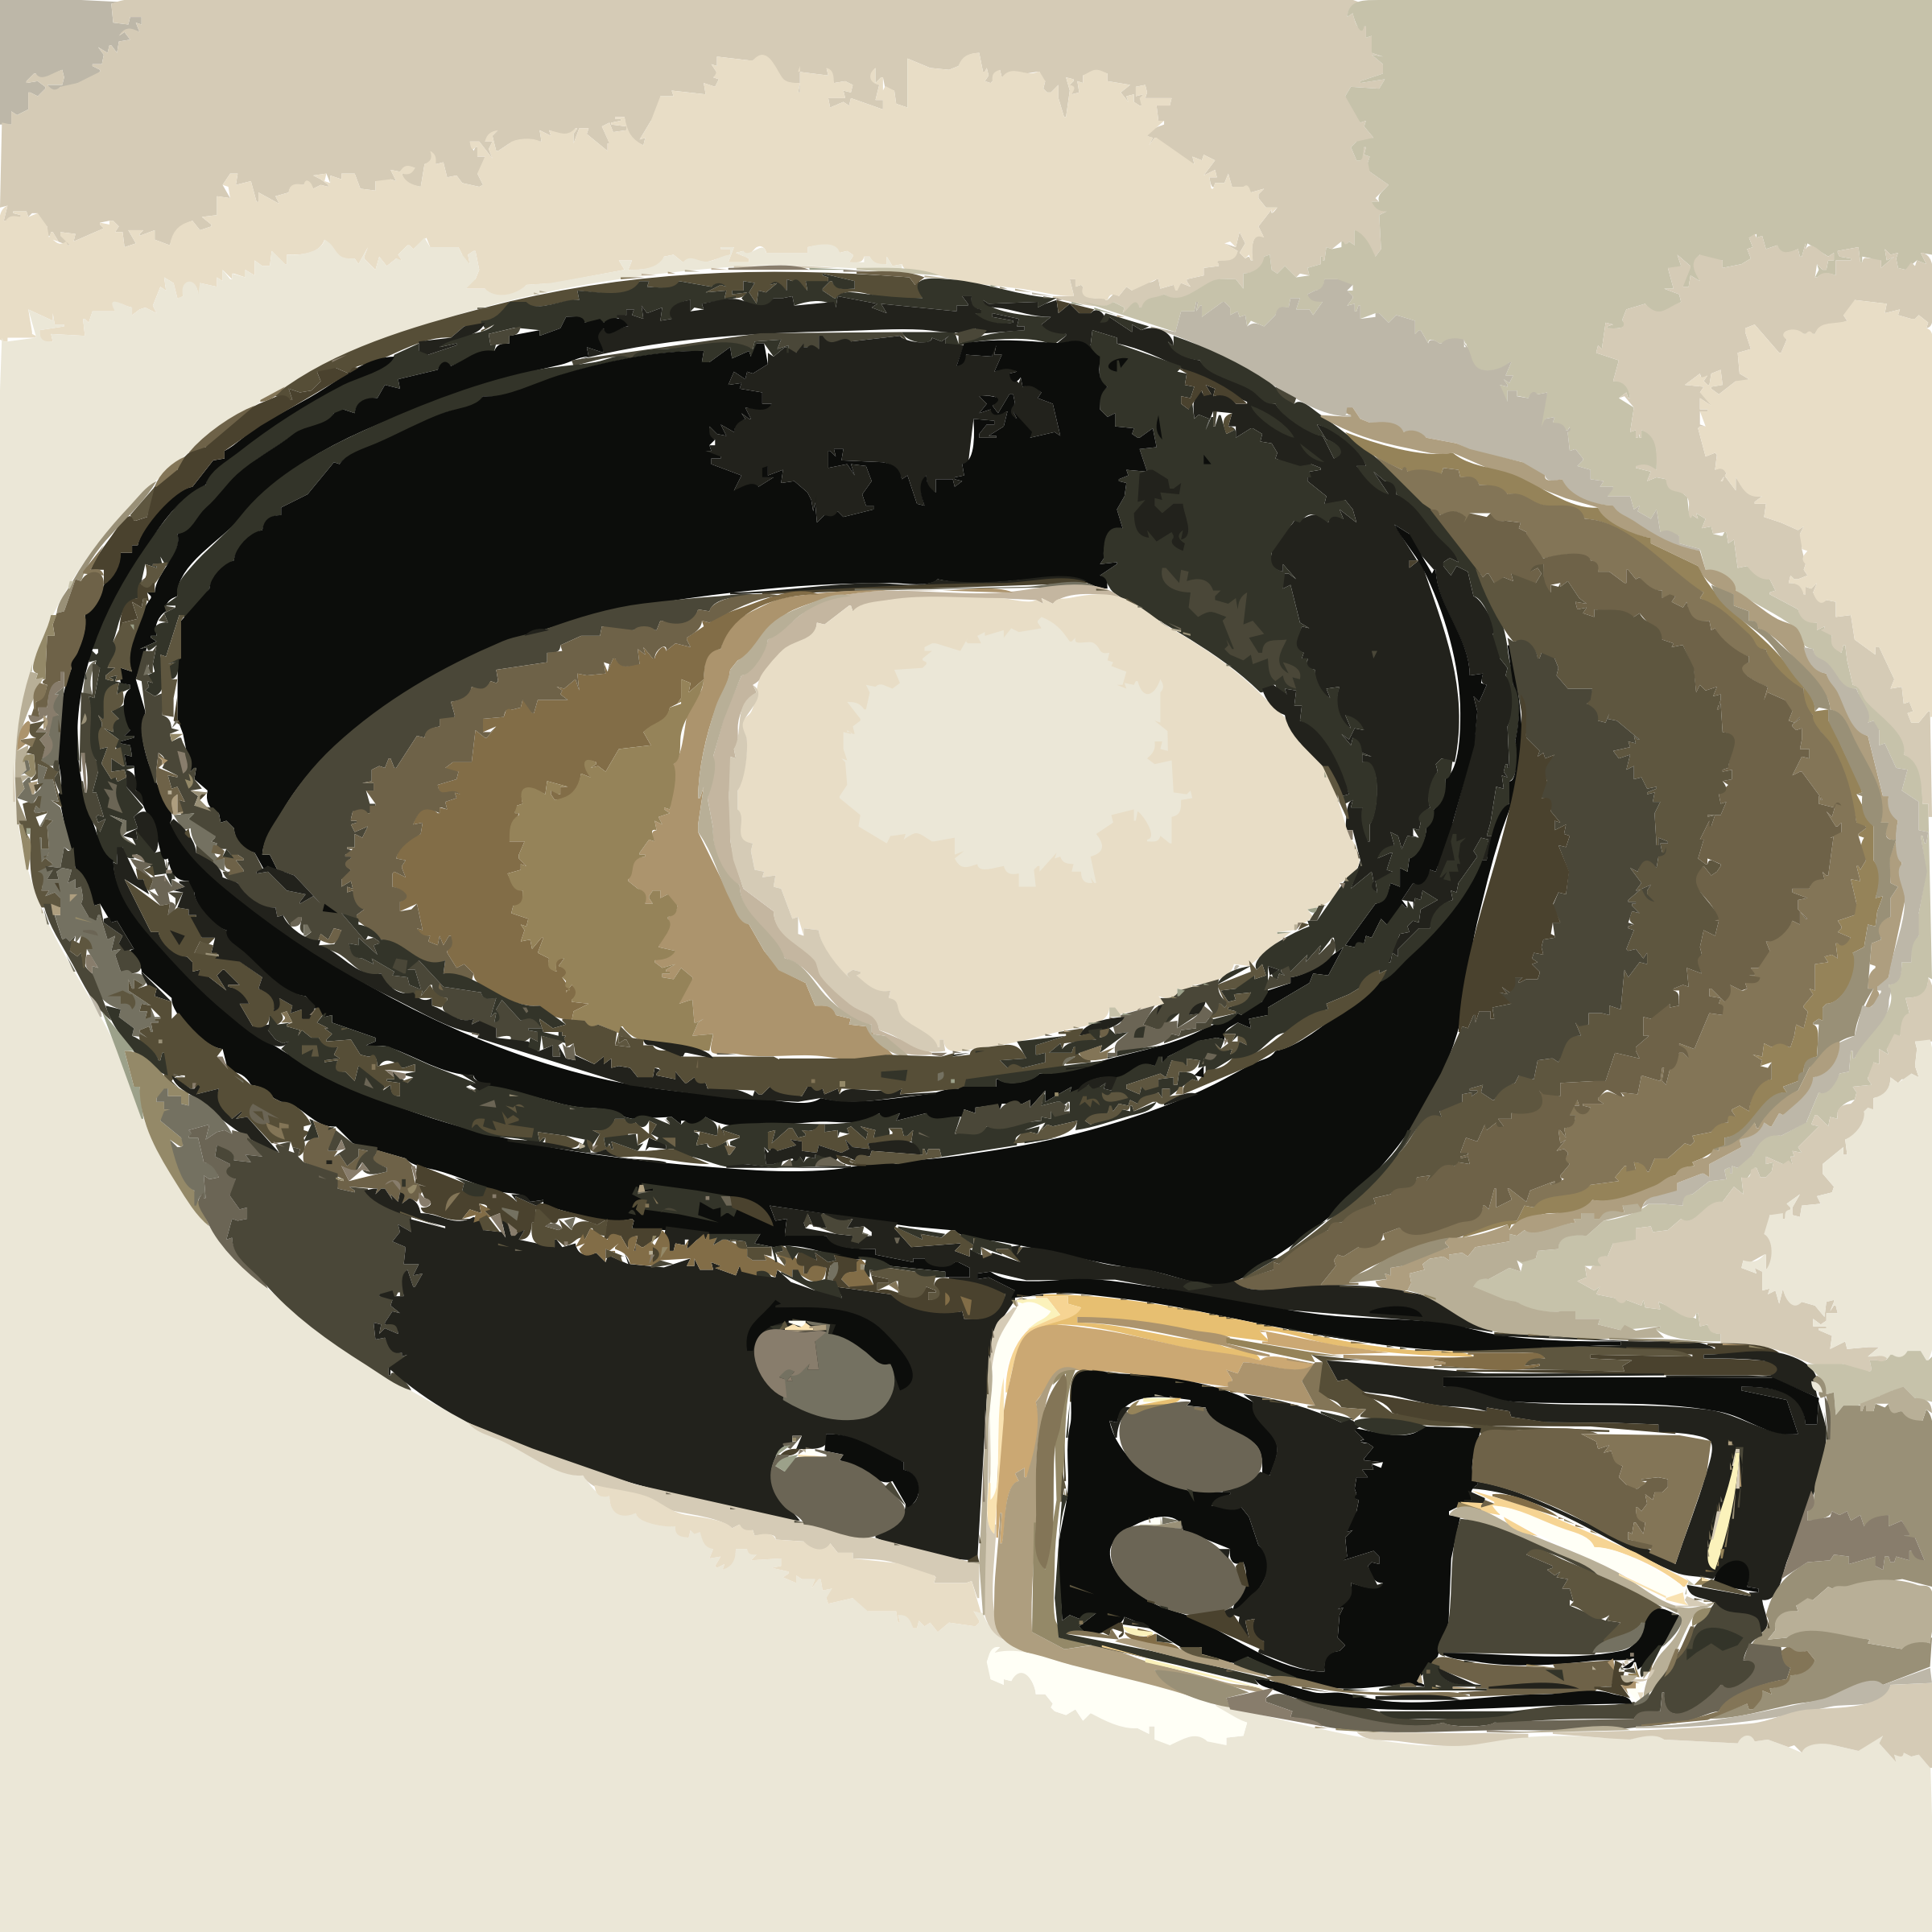 Bespoke leather belt by rejon